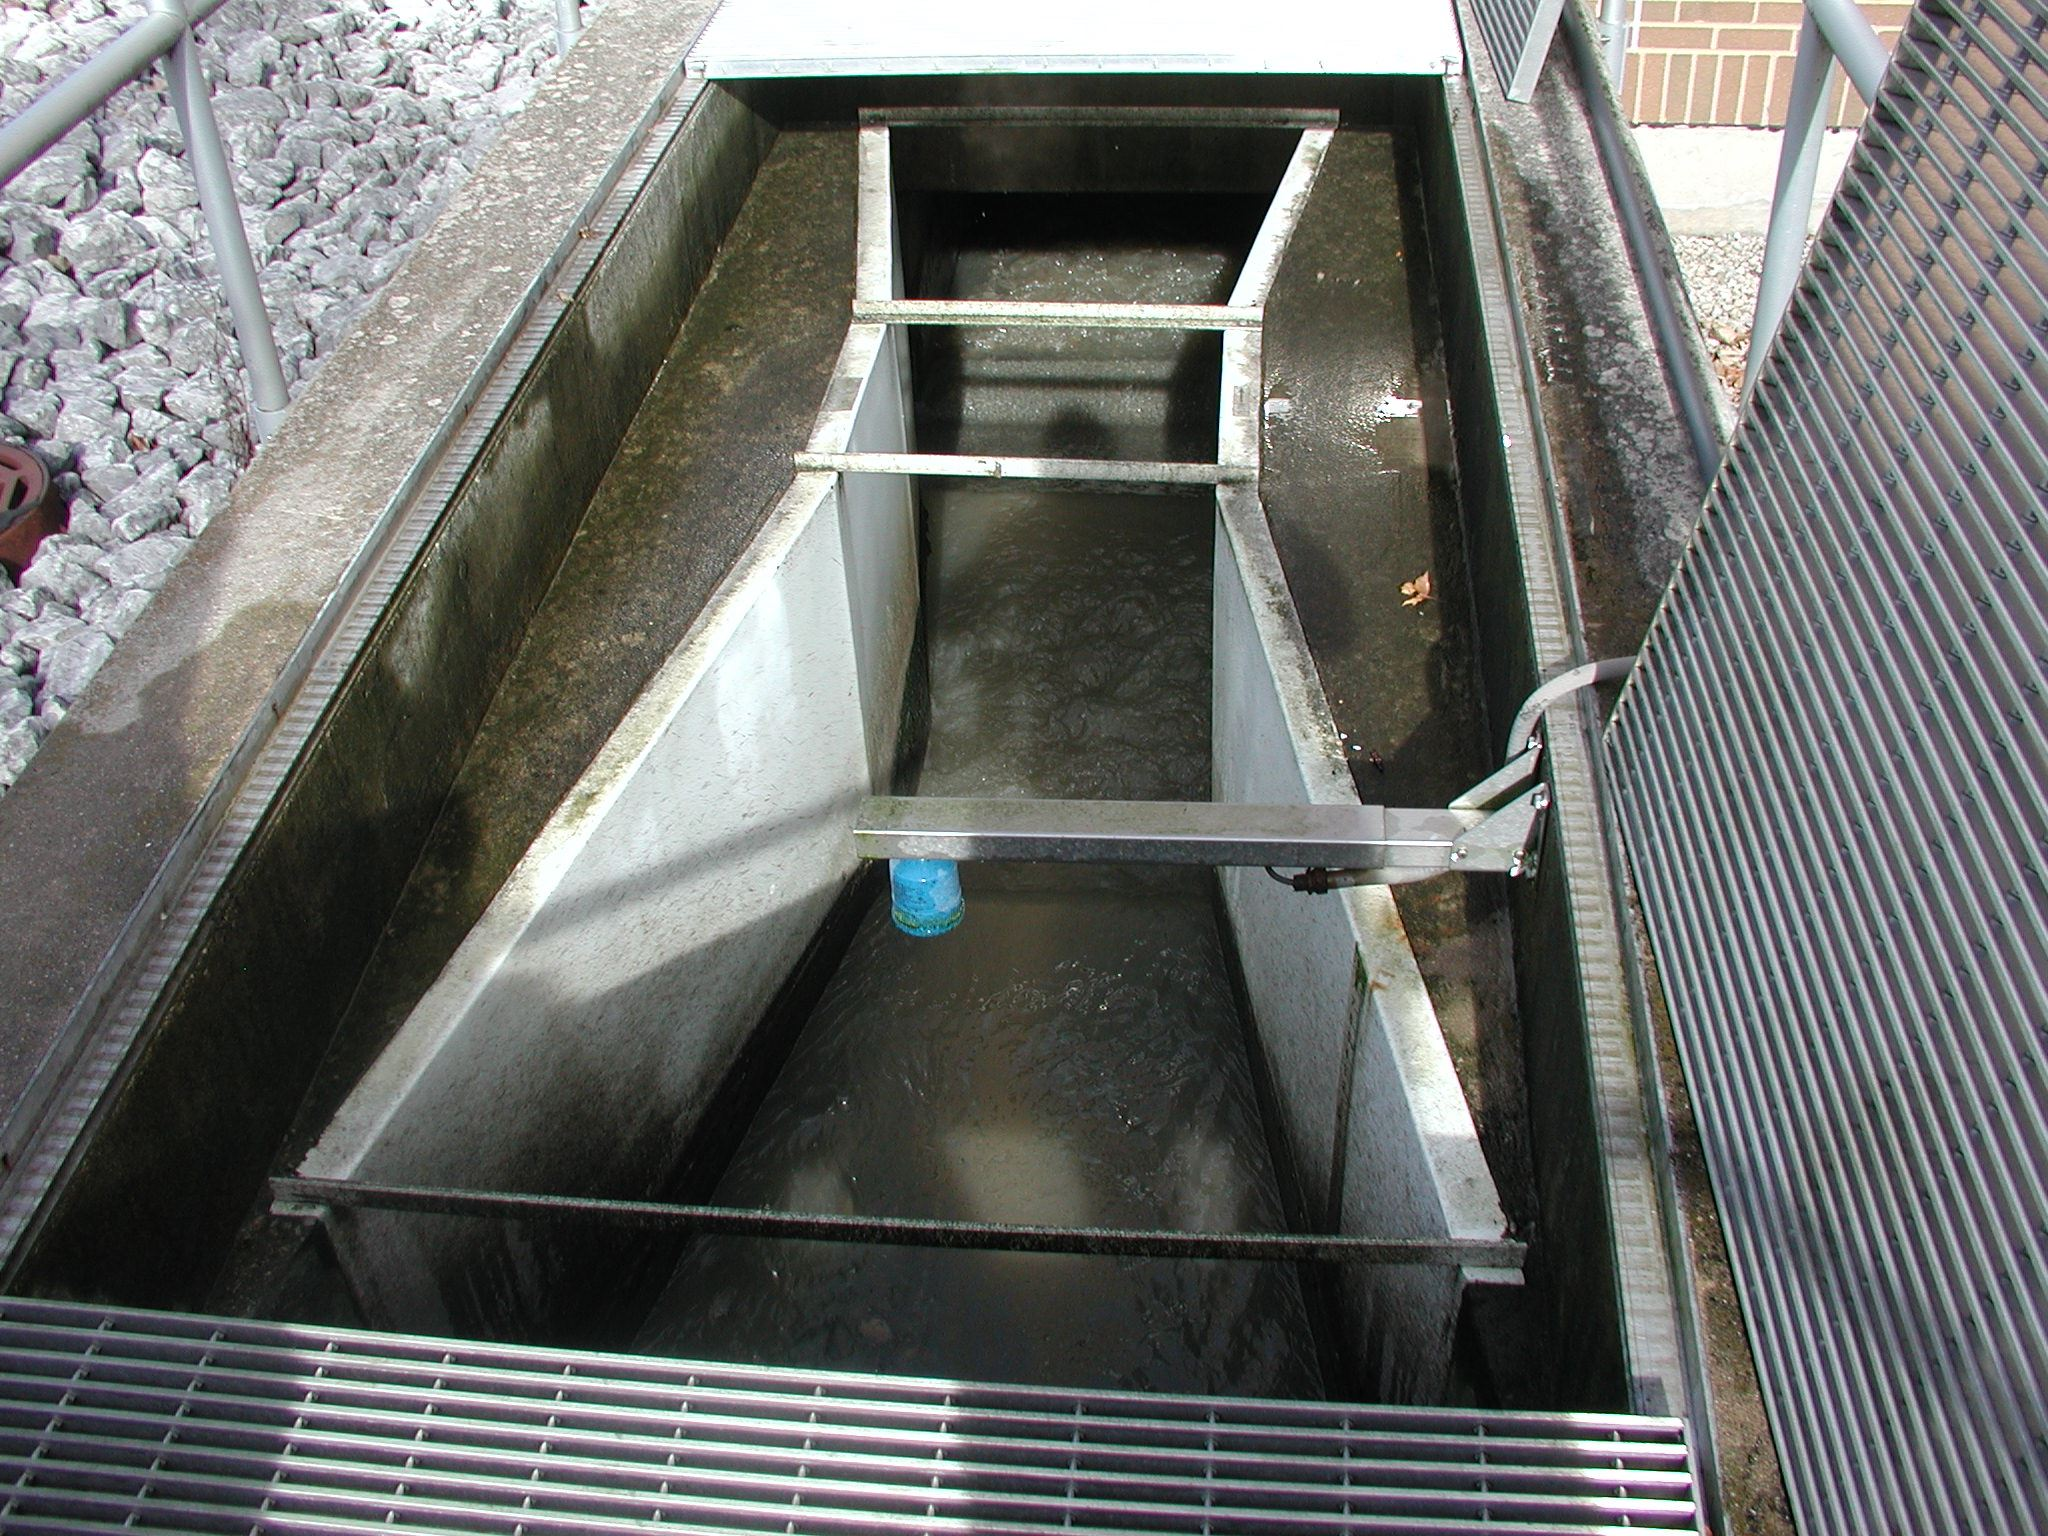 00 - Parshall Flume 1